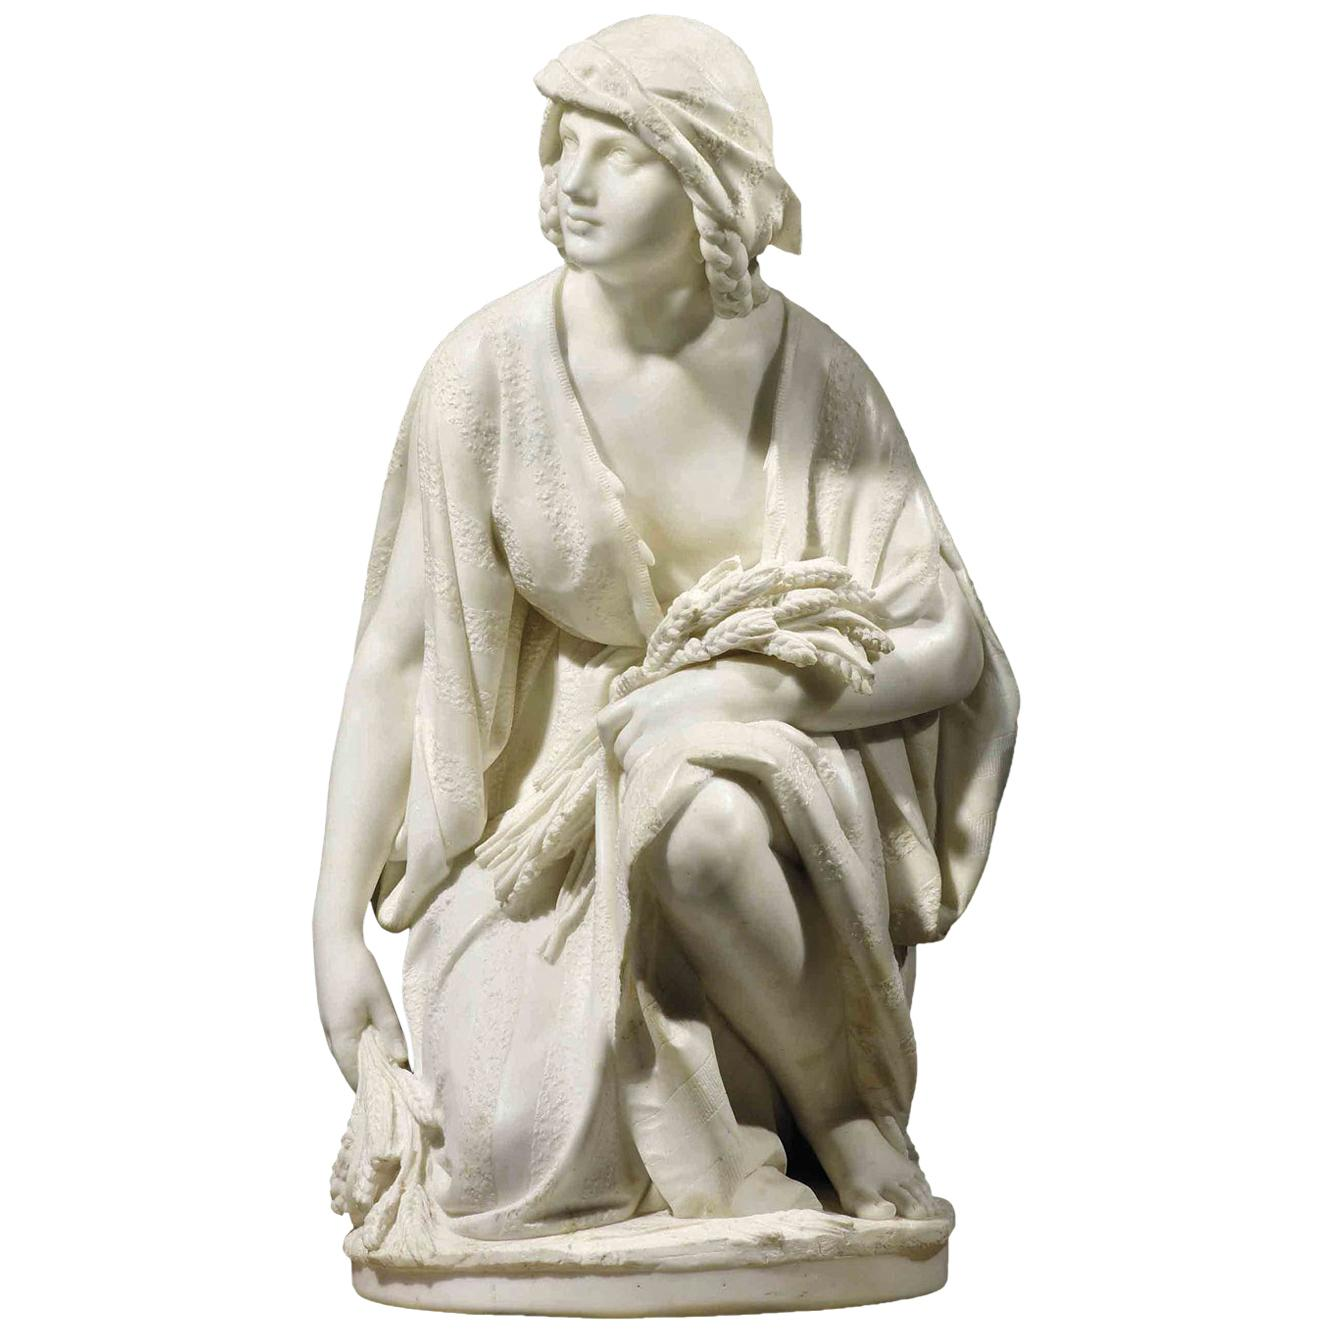 Italian Marble Figure of Ruth Gleaning by Pasquale Romanelli, Florence